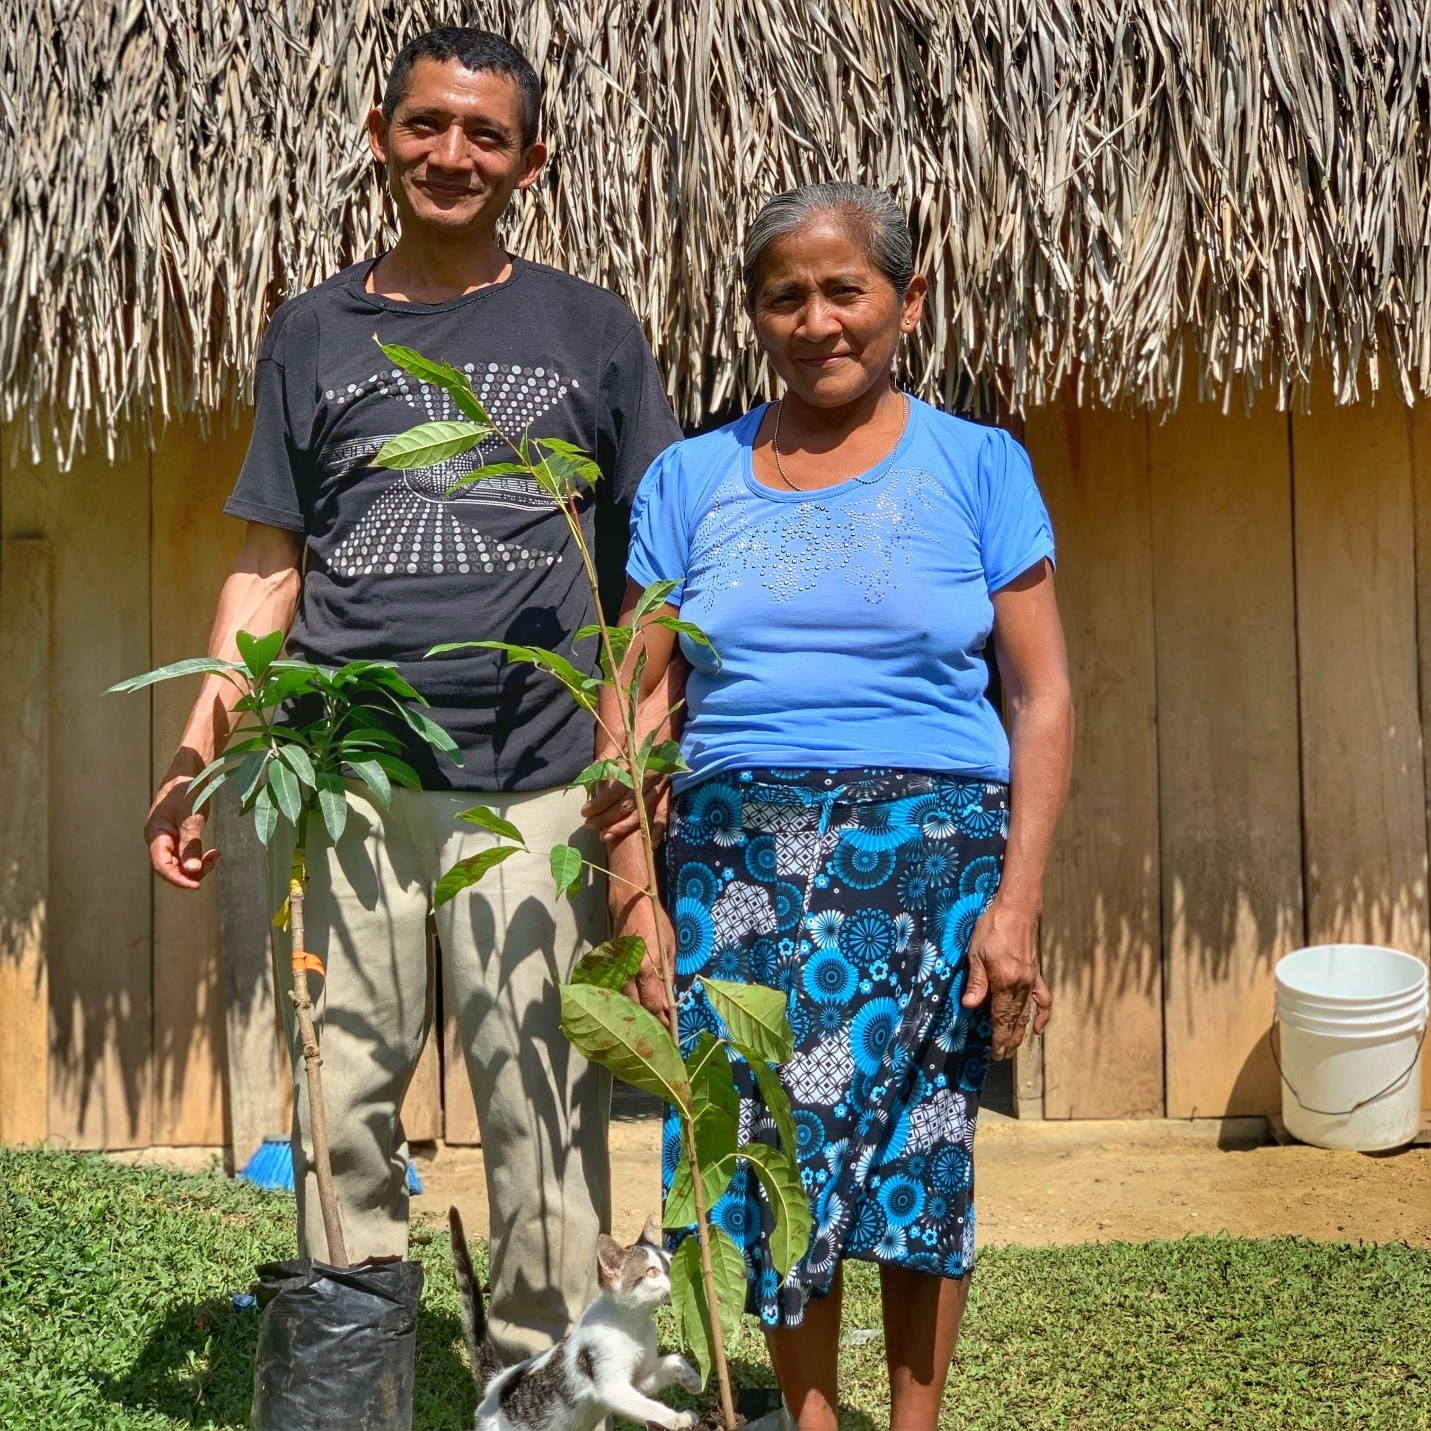 Justo and Irma — Our Belizean Cacao Farmers